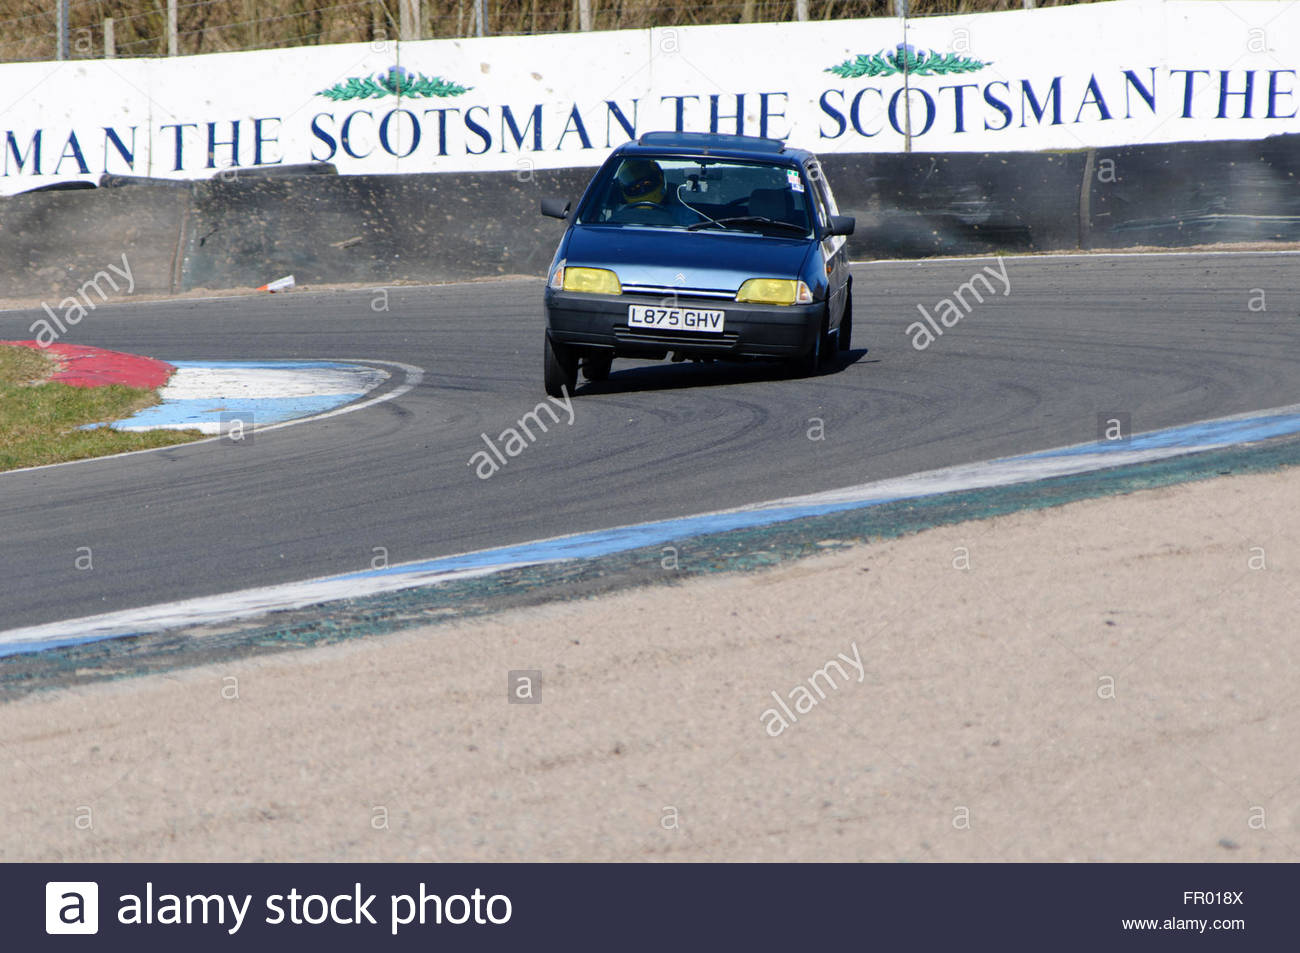 Dunfermline Uk Sun 20th March 2016 On The Limit Cornering At